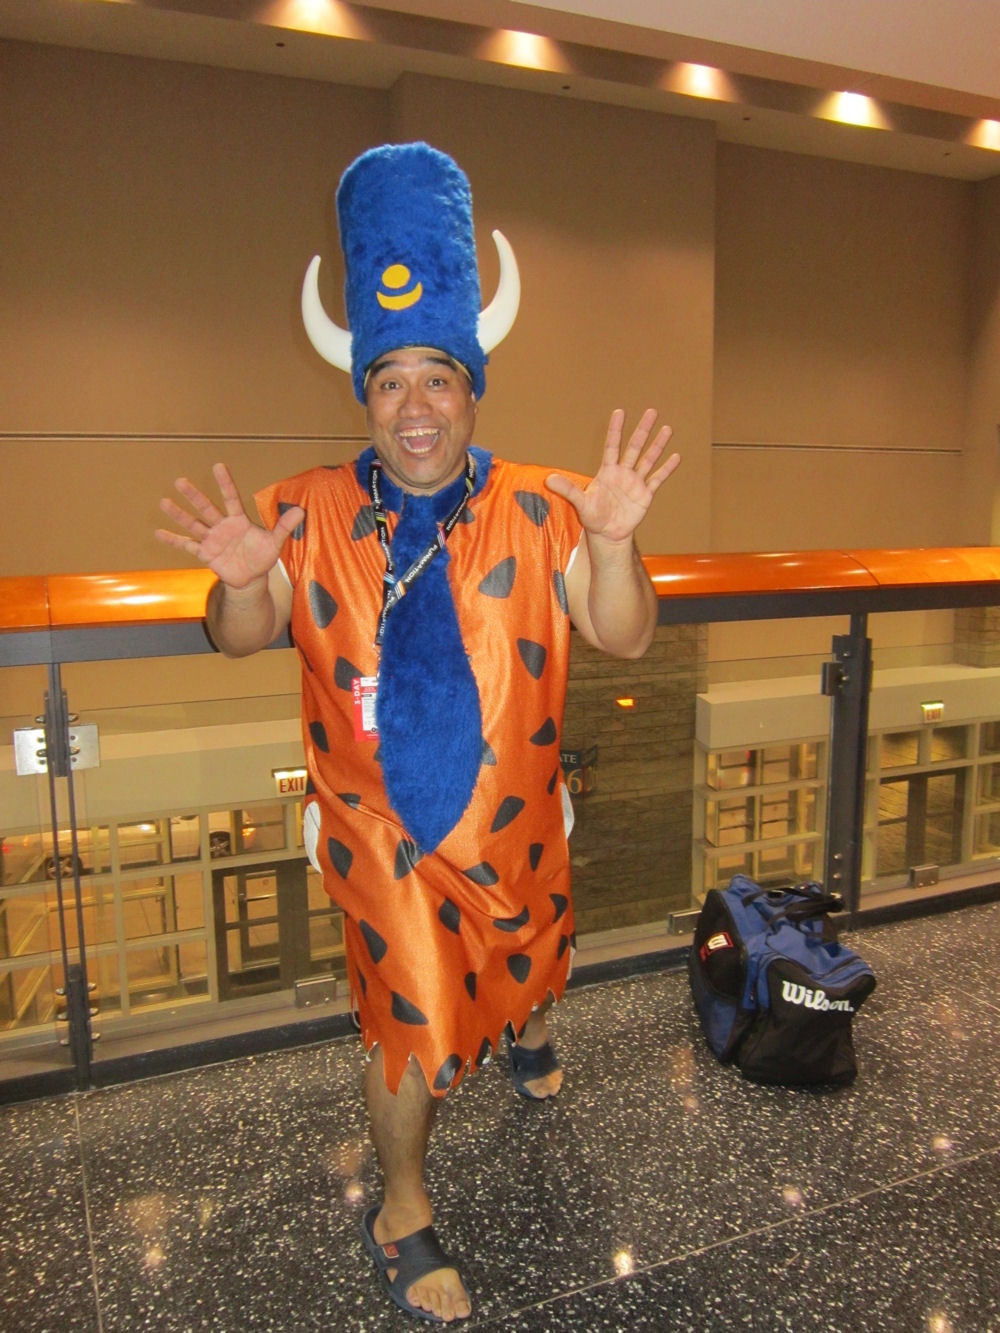 flintstone single guys Get your flintstone costumes from the retro tv show the flintstones in many sizes and styles find adult, kids, and sexy flintstone costumes deluxe lodge man.